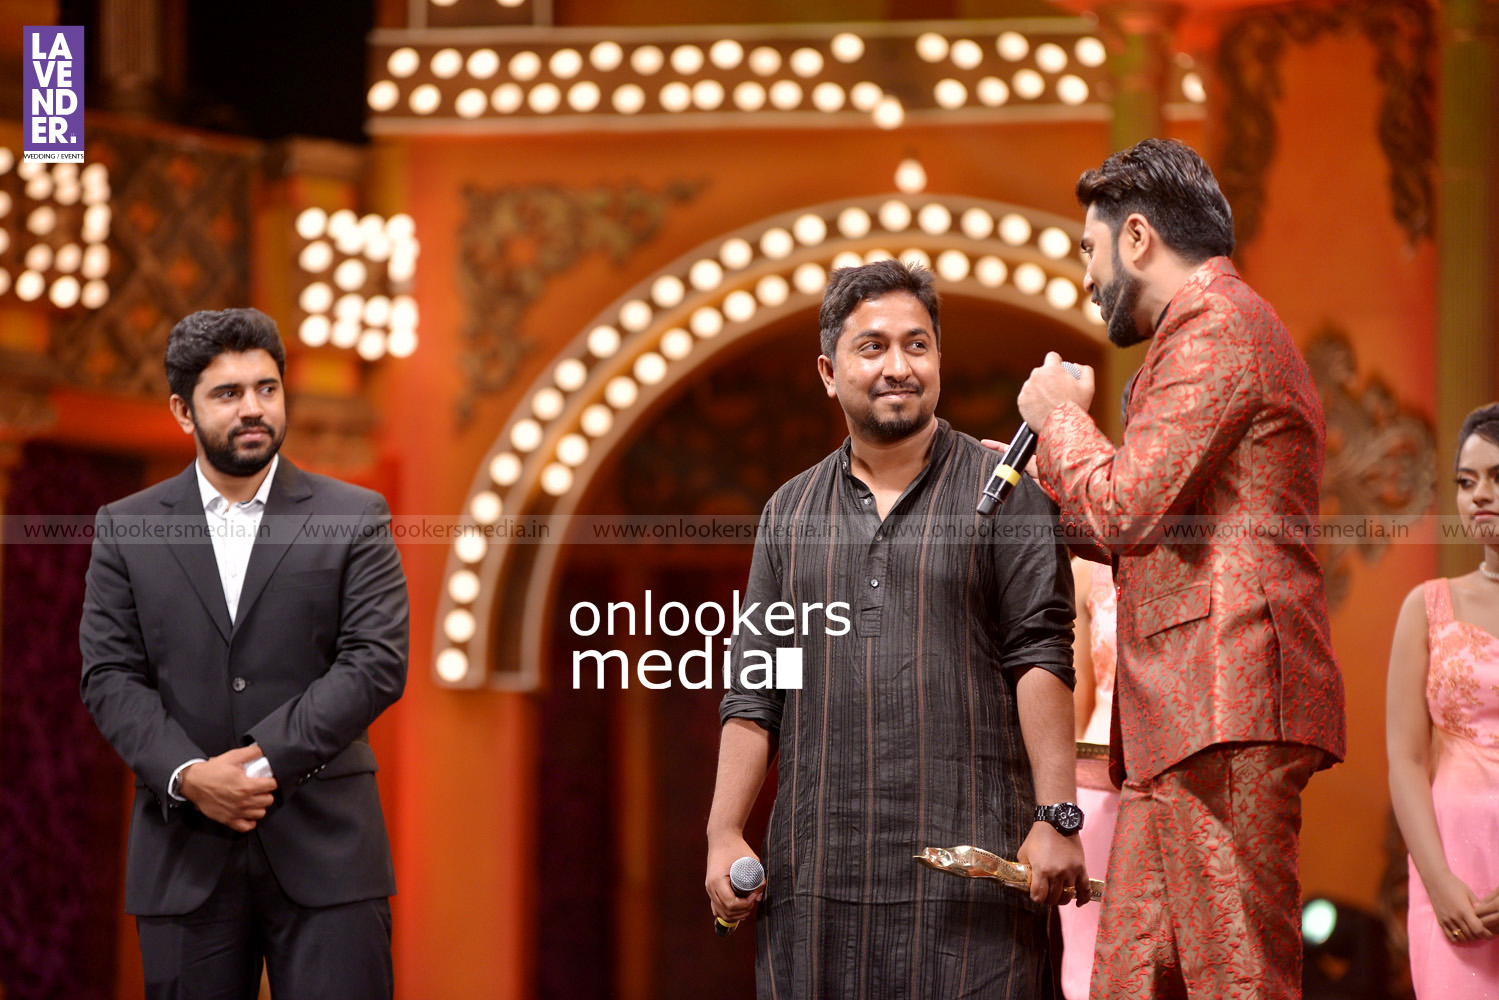 http://onlookersmedia.in/wp-content/uploads/2016/02/Nivin-Pauly-at-Asianet-Film-Award-2016-33.jpg